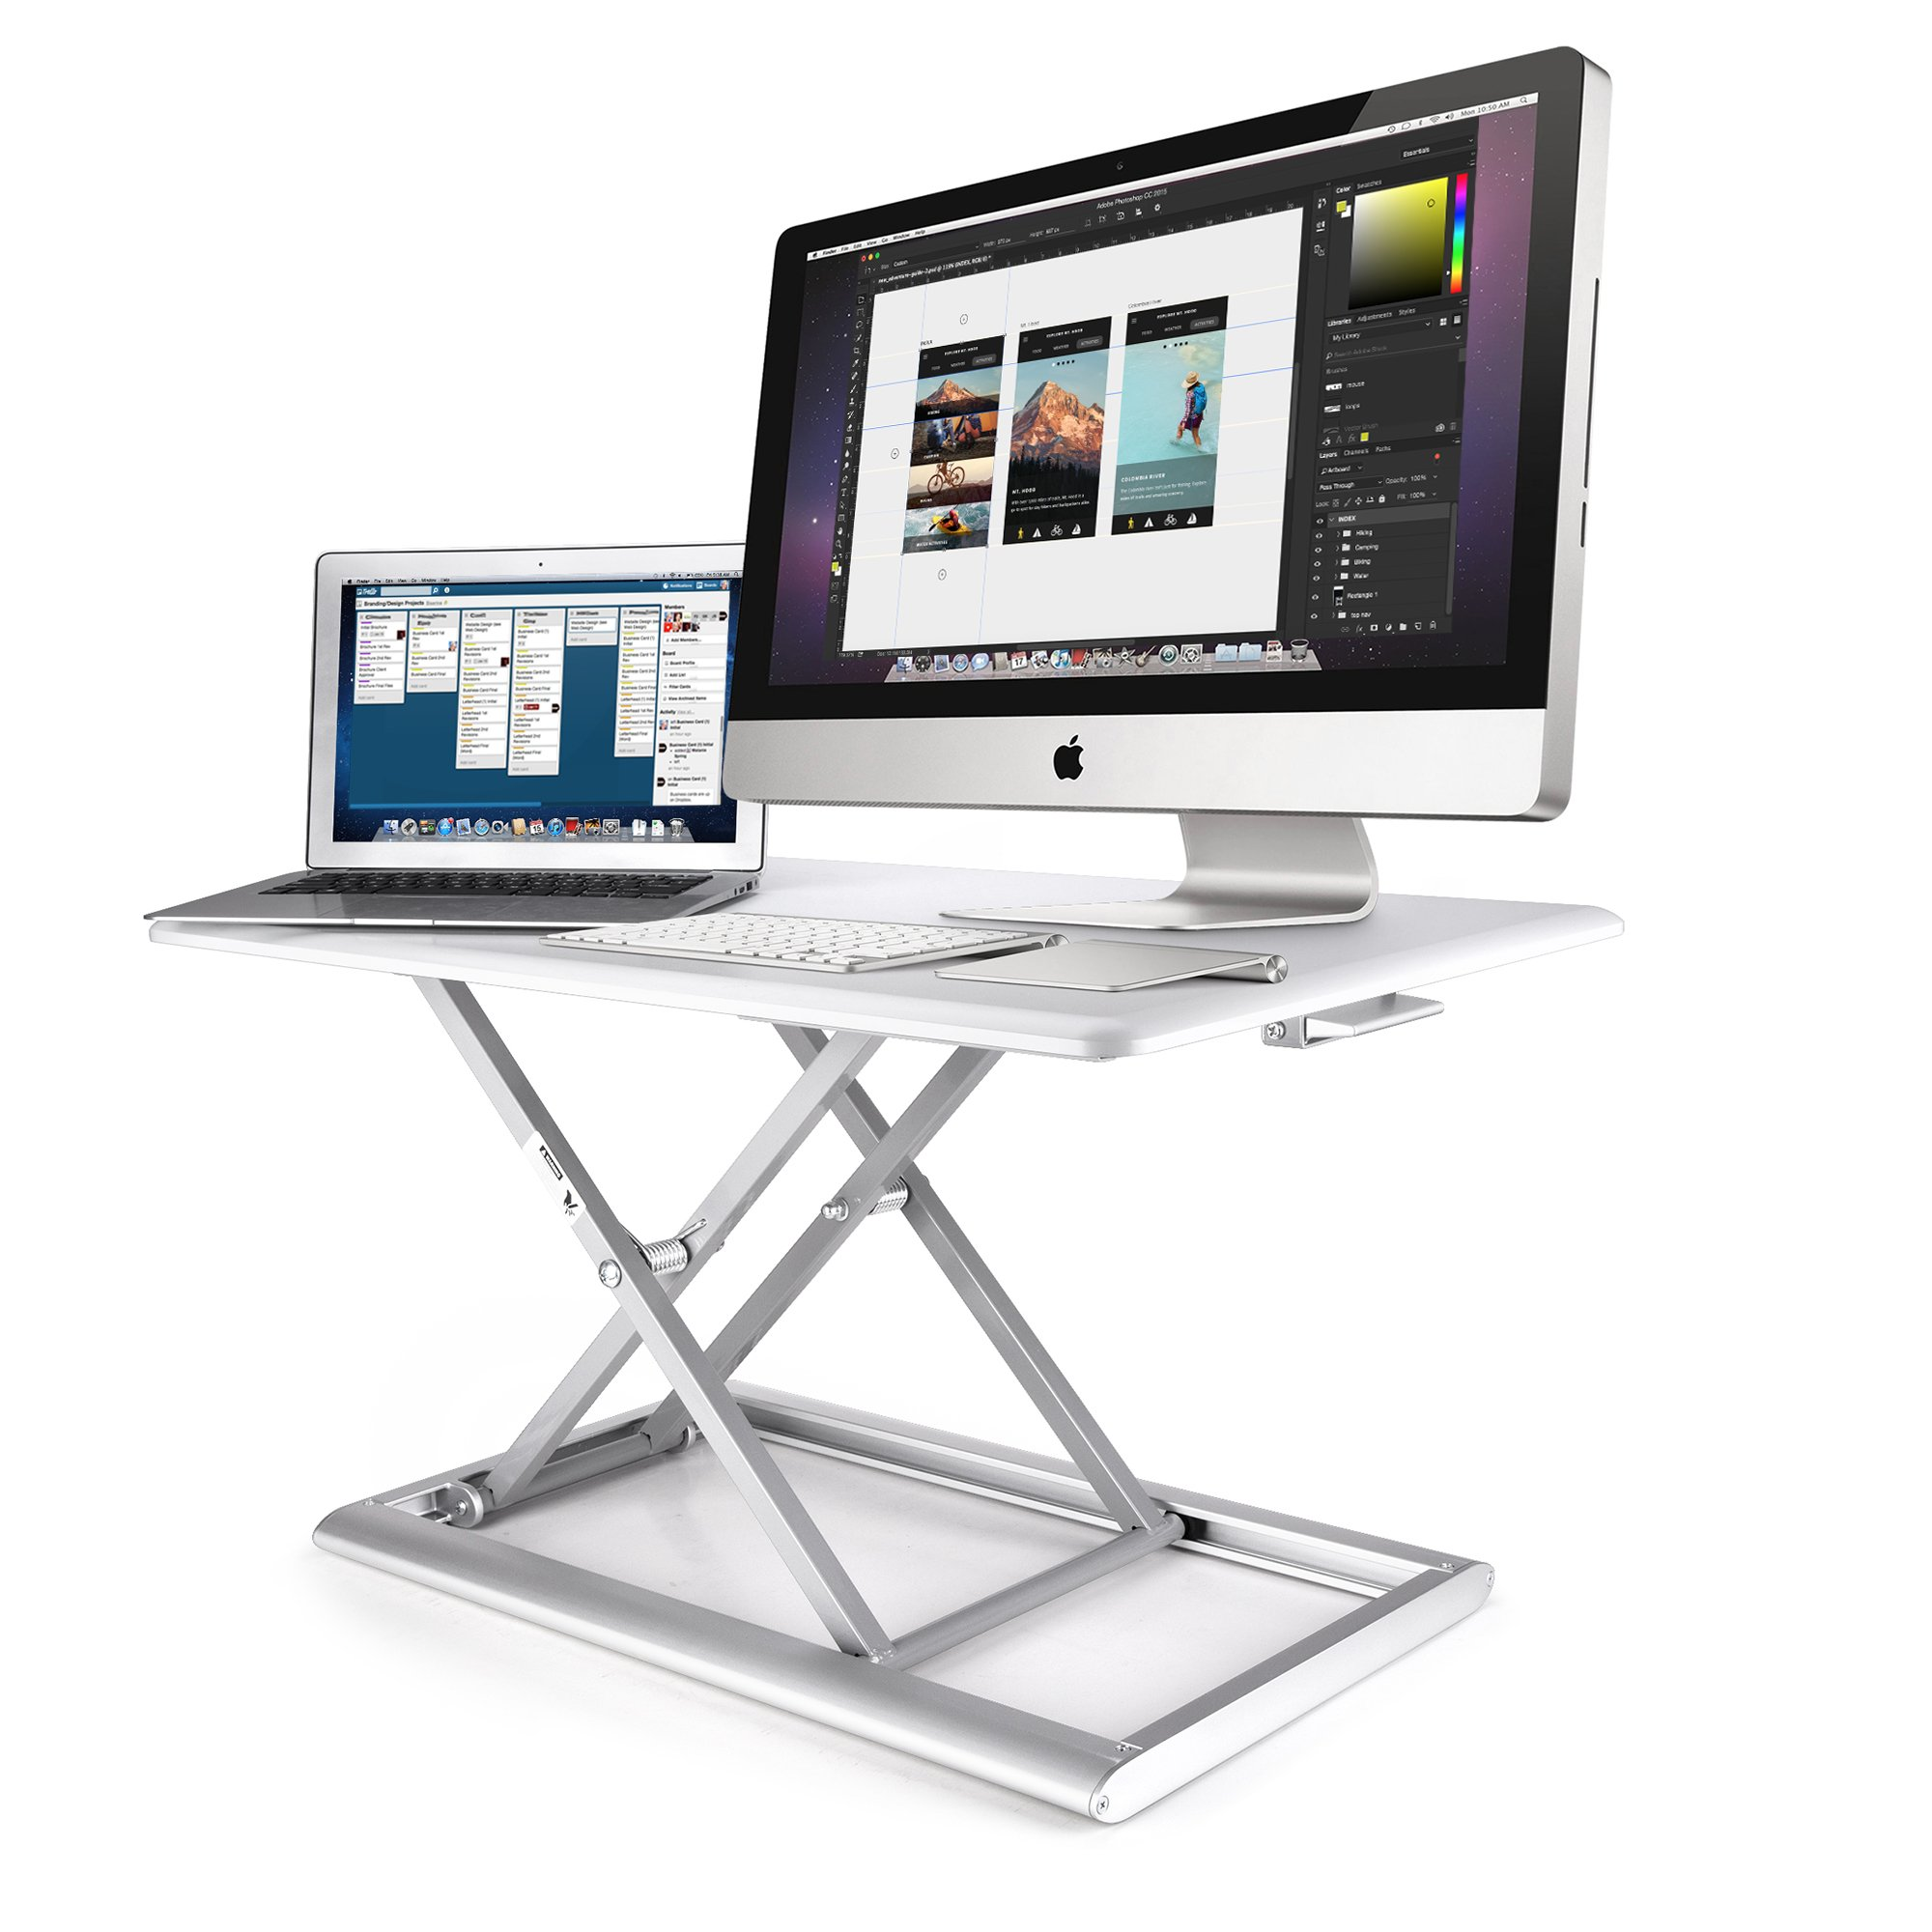 AboveTEK Compact & Solid Aluminum Standing Desk, 30'' Desktop Platform Height Adjustable w/Smooth Air Assist, Instant Sit Stand Converter & Dual Monitor Laptop Computer Riser at Home & Office (White) by AboveTEK